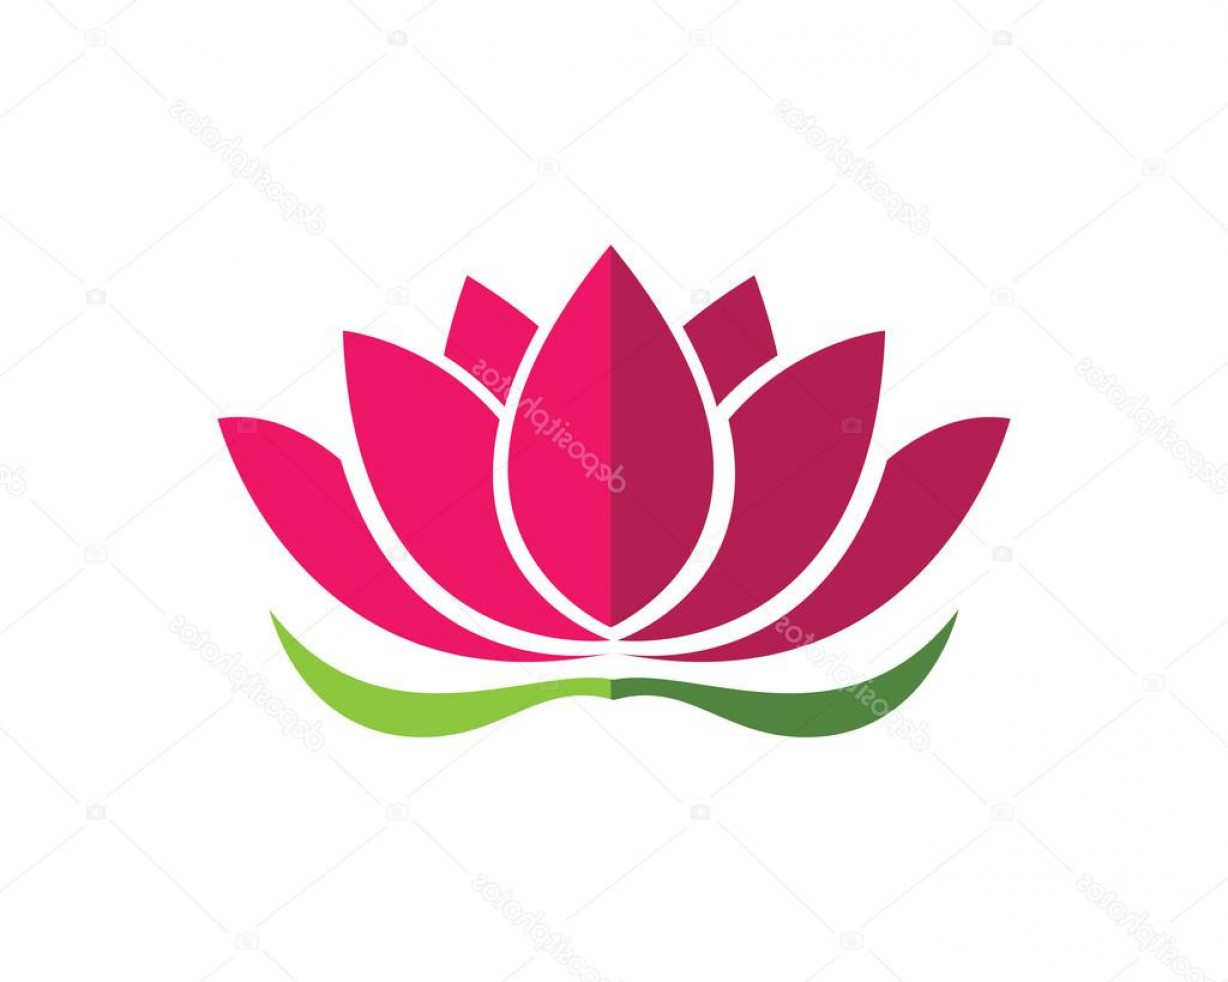 Icon Of Flower Vectors: Stock Illustration Stylized Lotus Flower Icon Vector